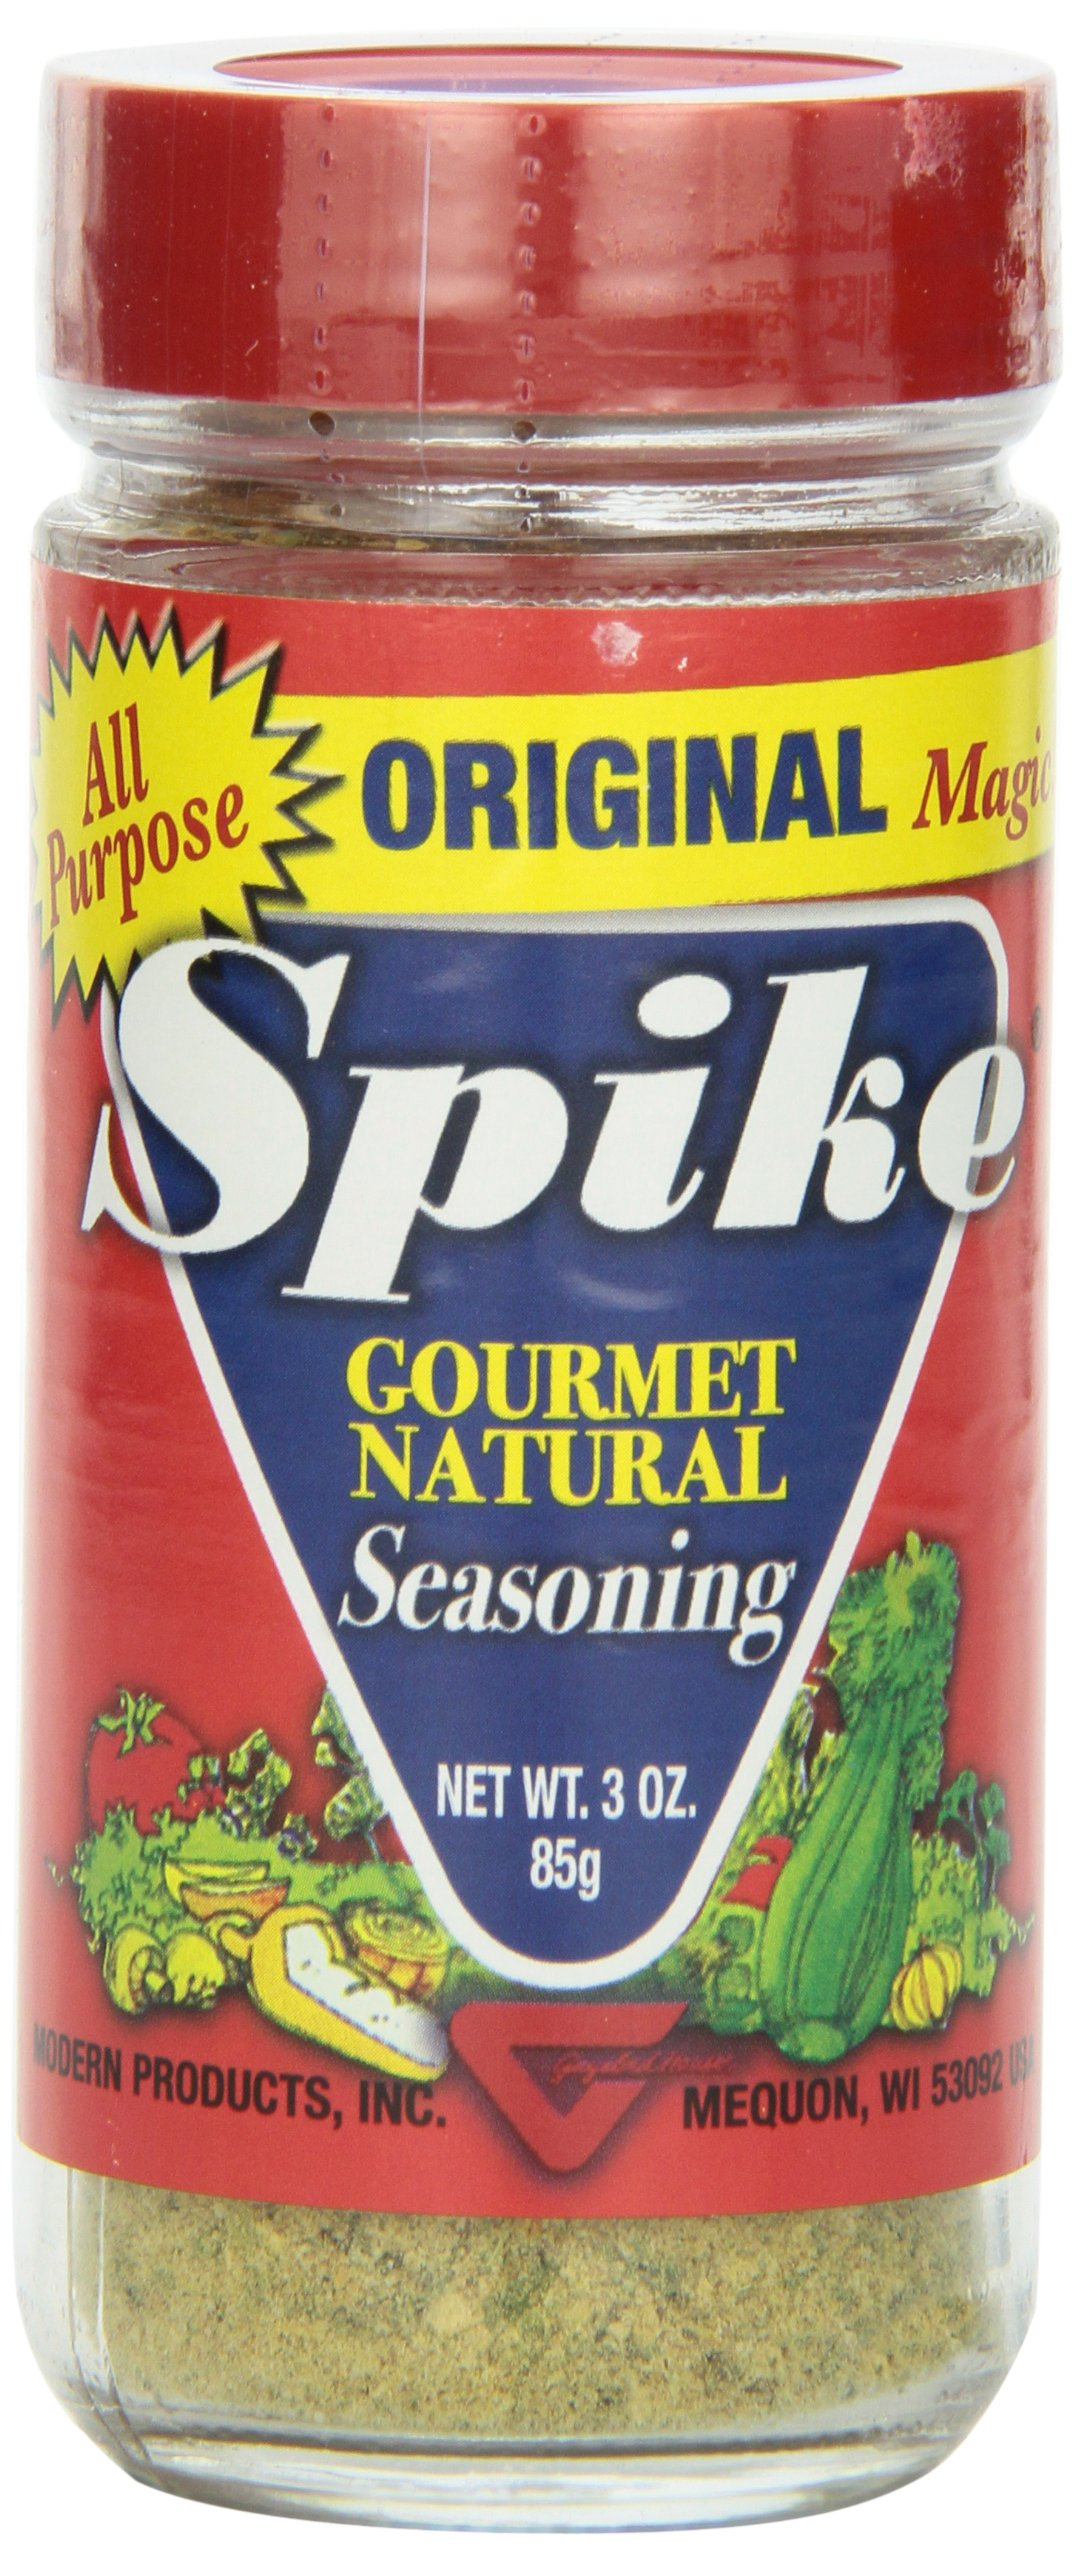 Spike Gourmet Natural Seasoning, Original, 3 Ounce (Pack of 6)